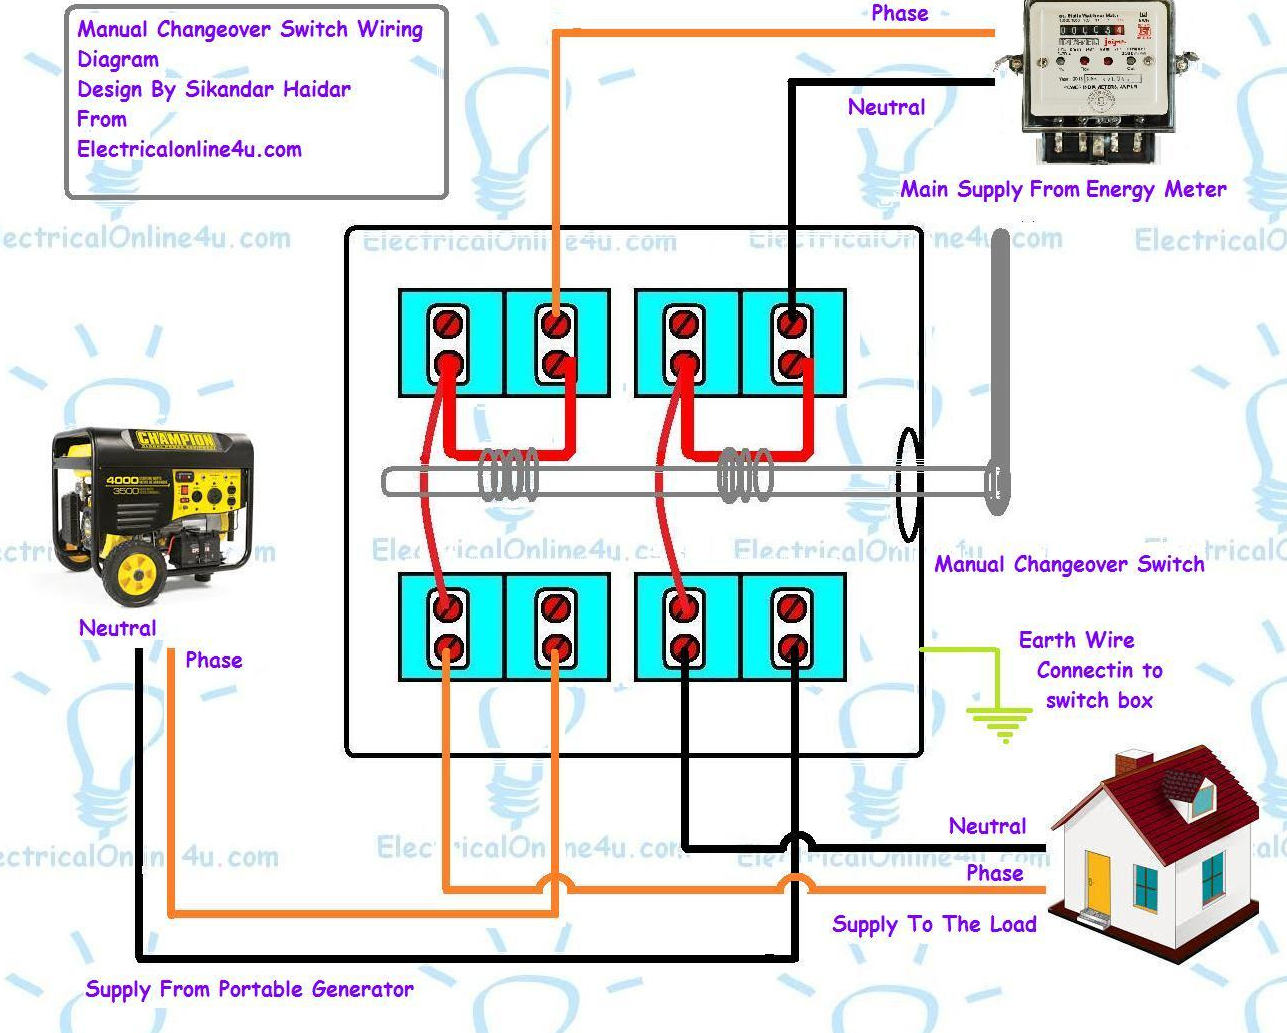 Tremendous Manual Changeover Switch Wiring Diagram For Portable Generator Wiring Cloud Nuvitbieswglorg